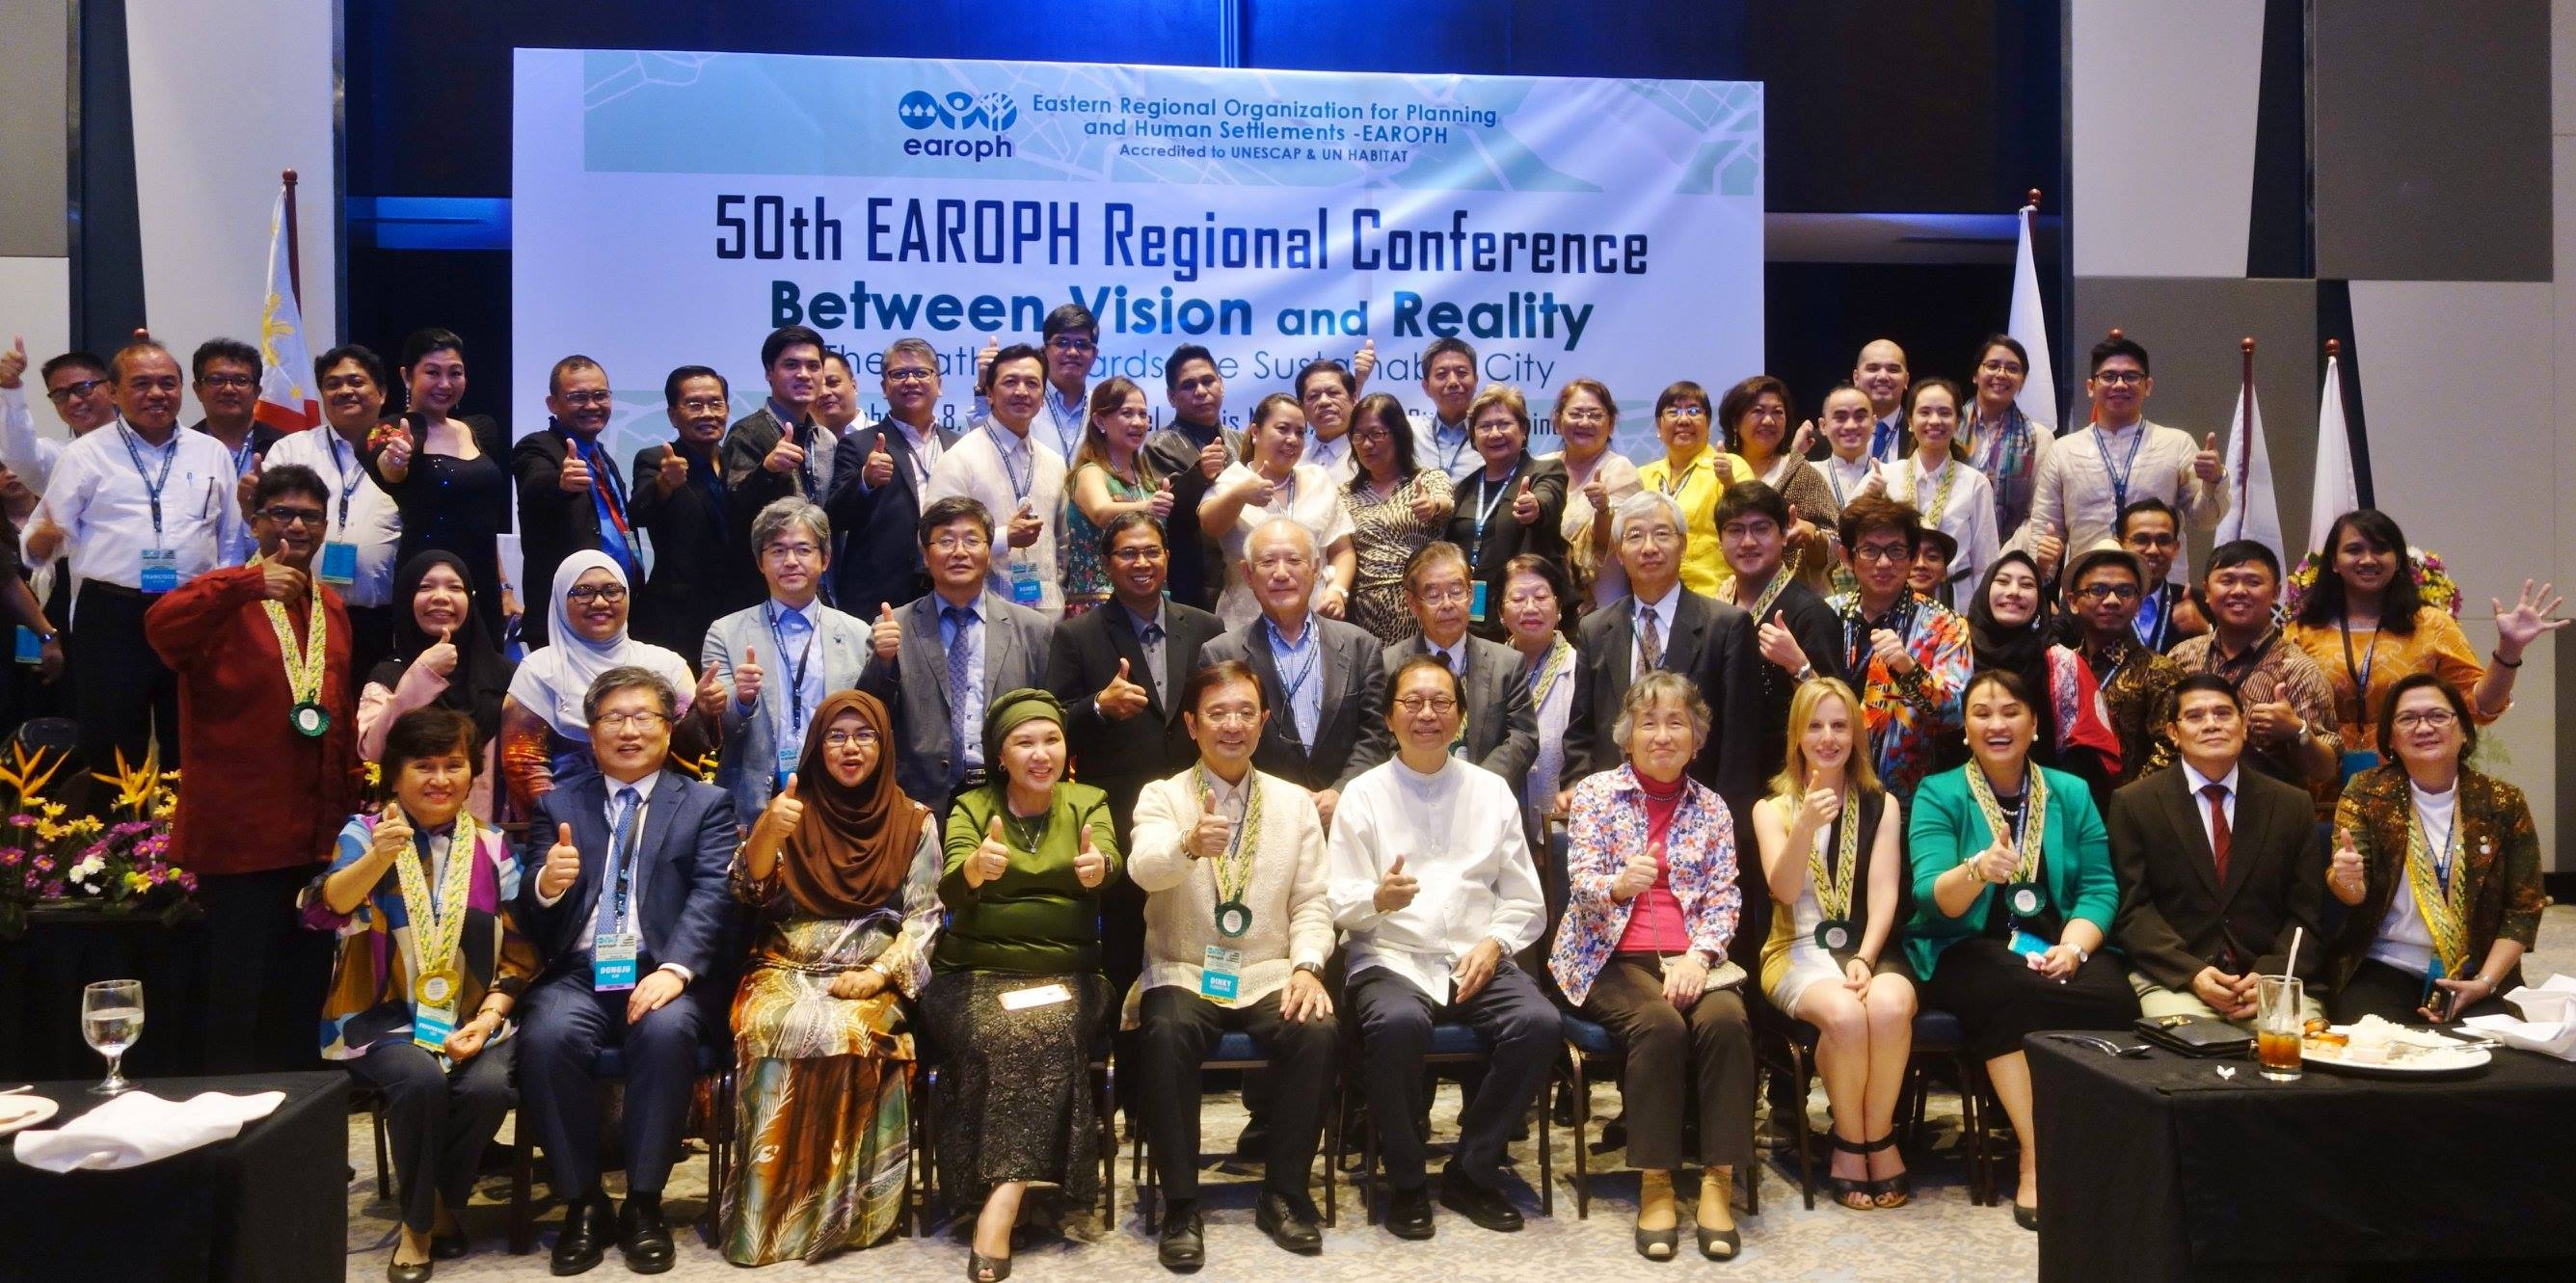 50th EAROPH Regional Conference